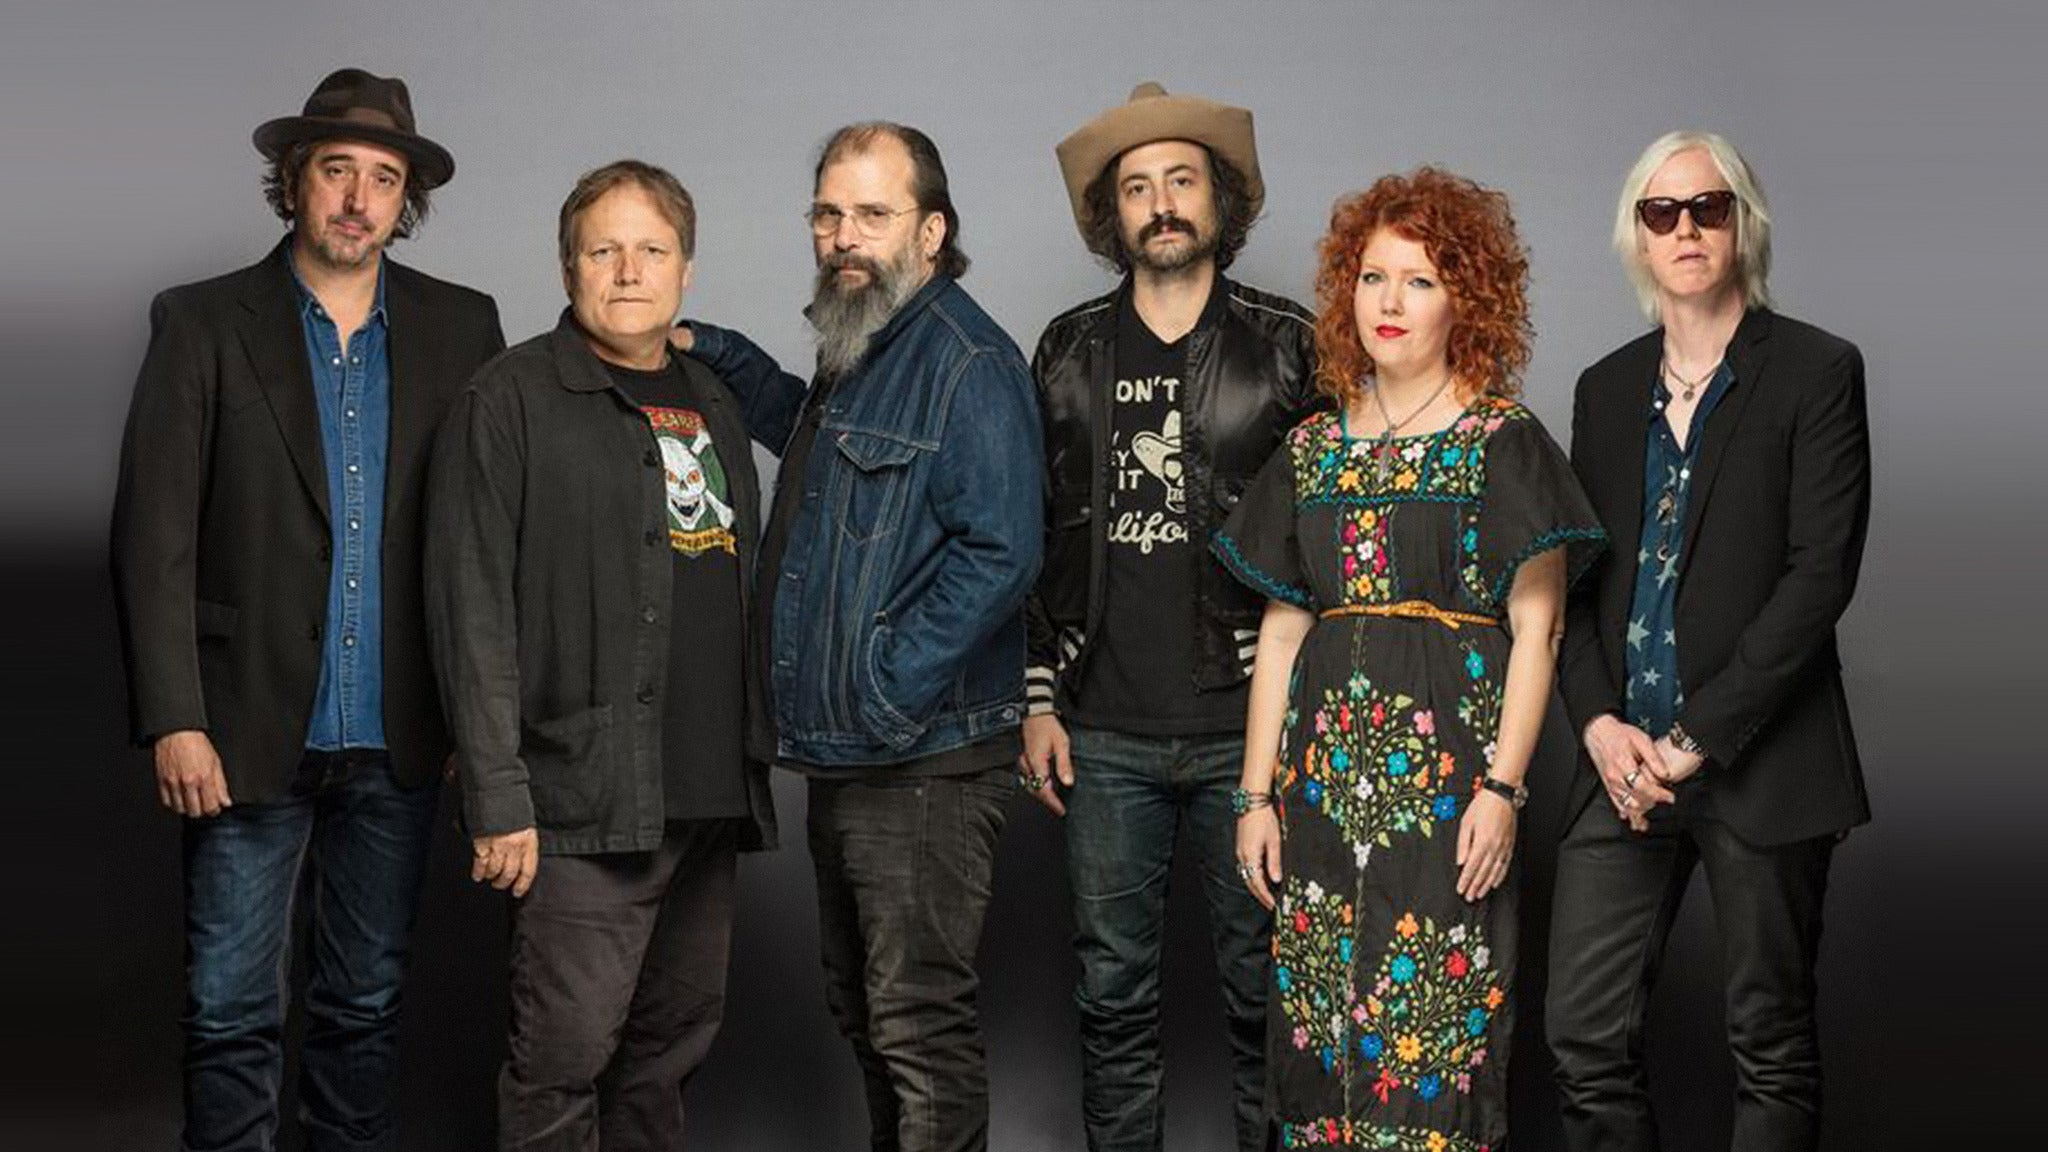 Steve Earle & the Dukes at Paramount Theatre